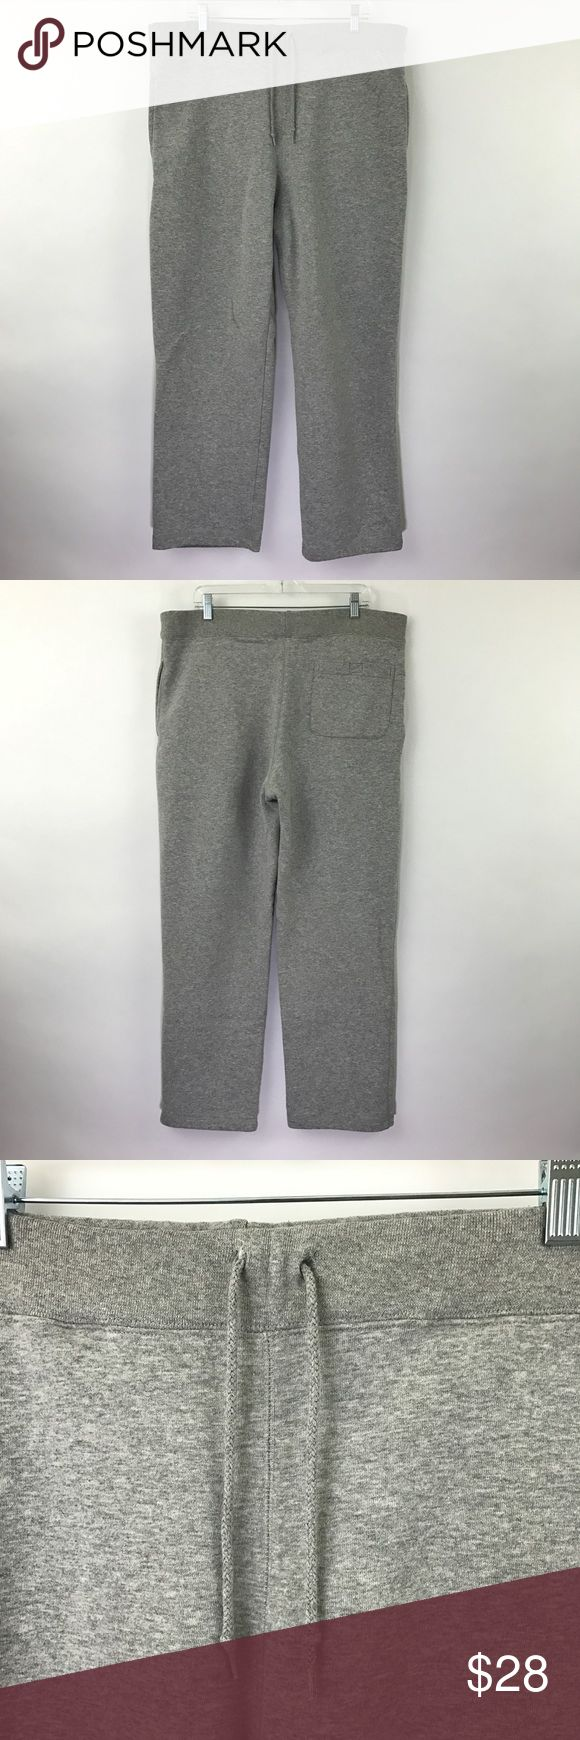 """Timberland men's gray sweatpants loose fit M21 Timberland Sweatpants Athletic Loose Fit Heathered Gray Men's Size Medium  Measurements: Waist 18"""" Flat across (has a tie waist and some stretch) Inseam: 28"""" Long  In good preowned condition with light all over wear and minimal pilling. Timberland Pants Sweatpants & Joggers"""